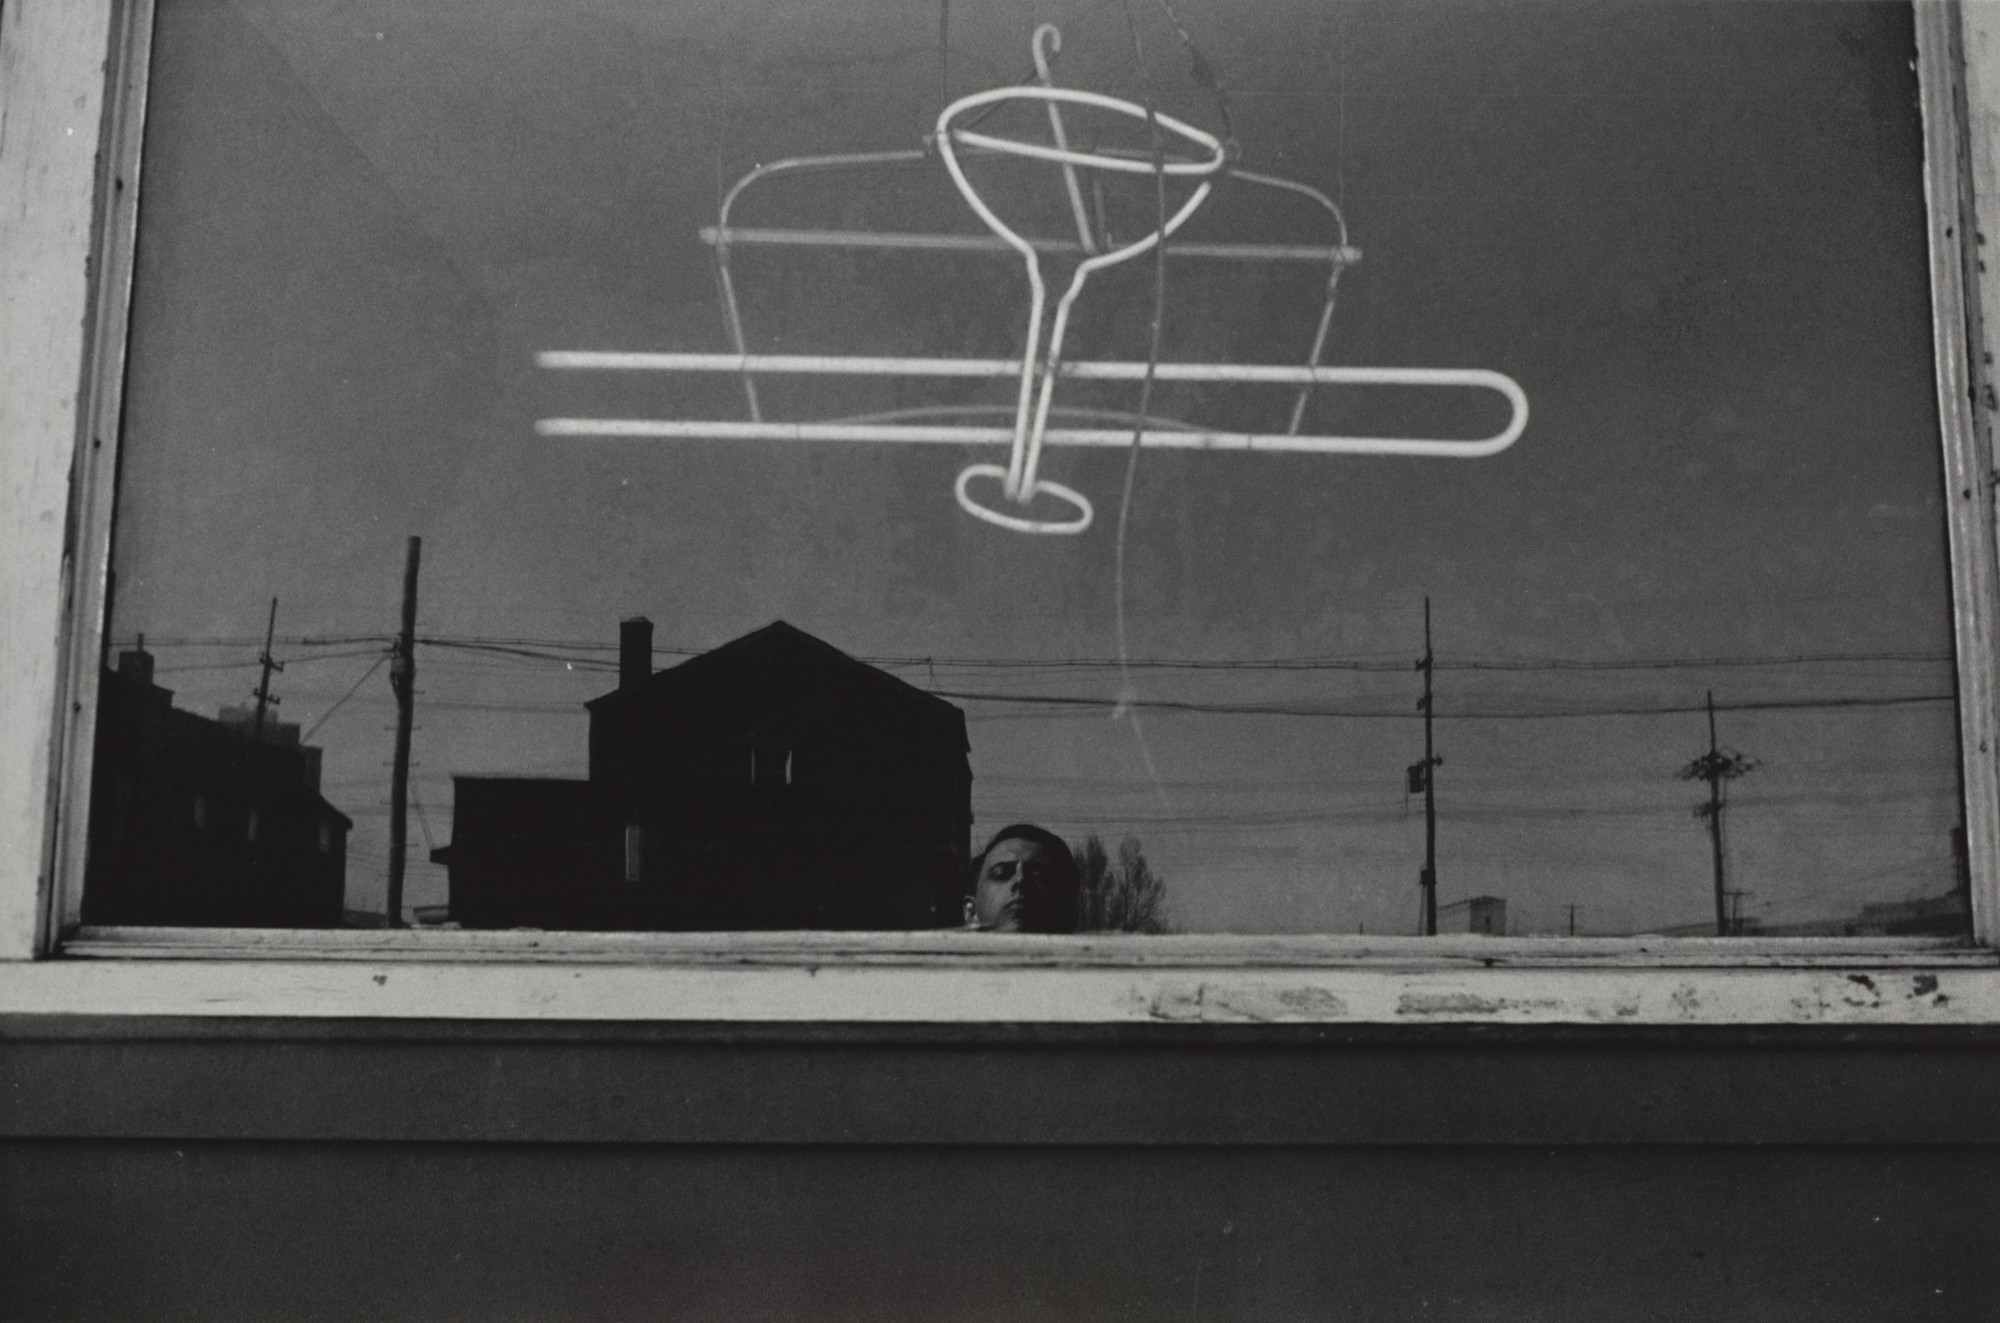 Lee Friedlander. Minnesota. 1966